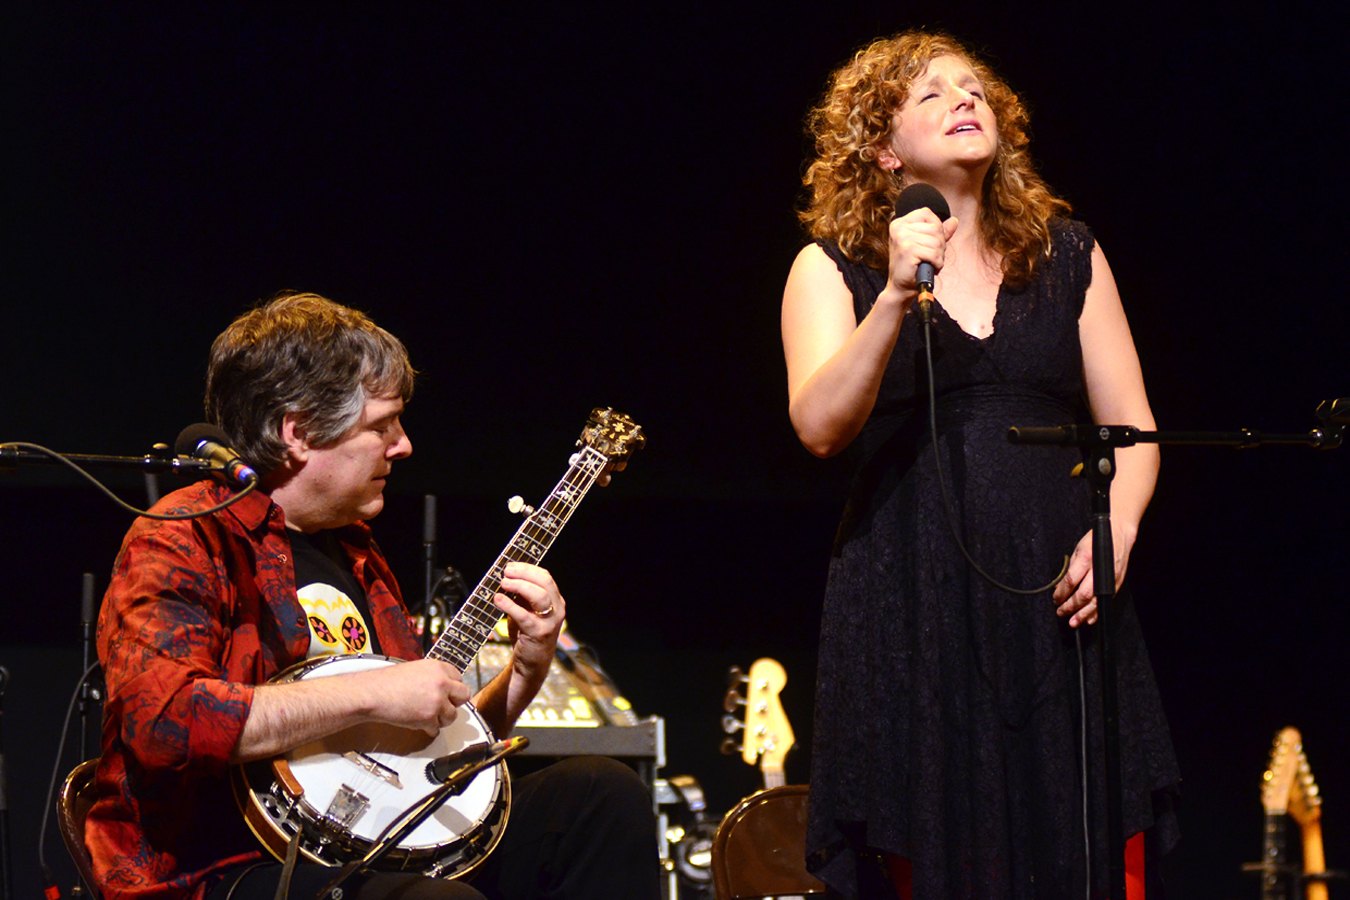 Bela Fleck and Abigail Washburn appear on Mountain Stage, recorded live on the campus of West Virginia Wesleyan College.